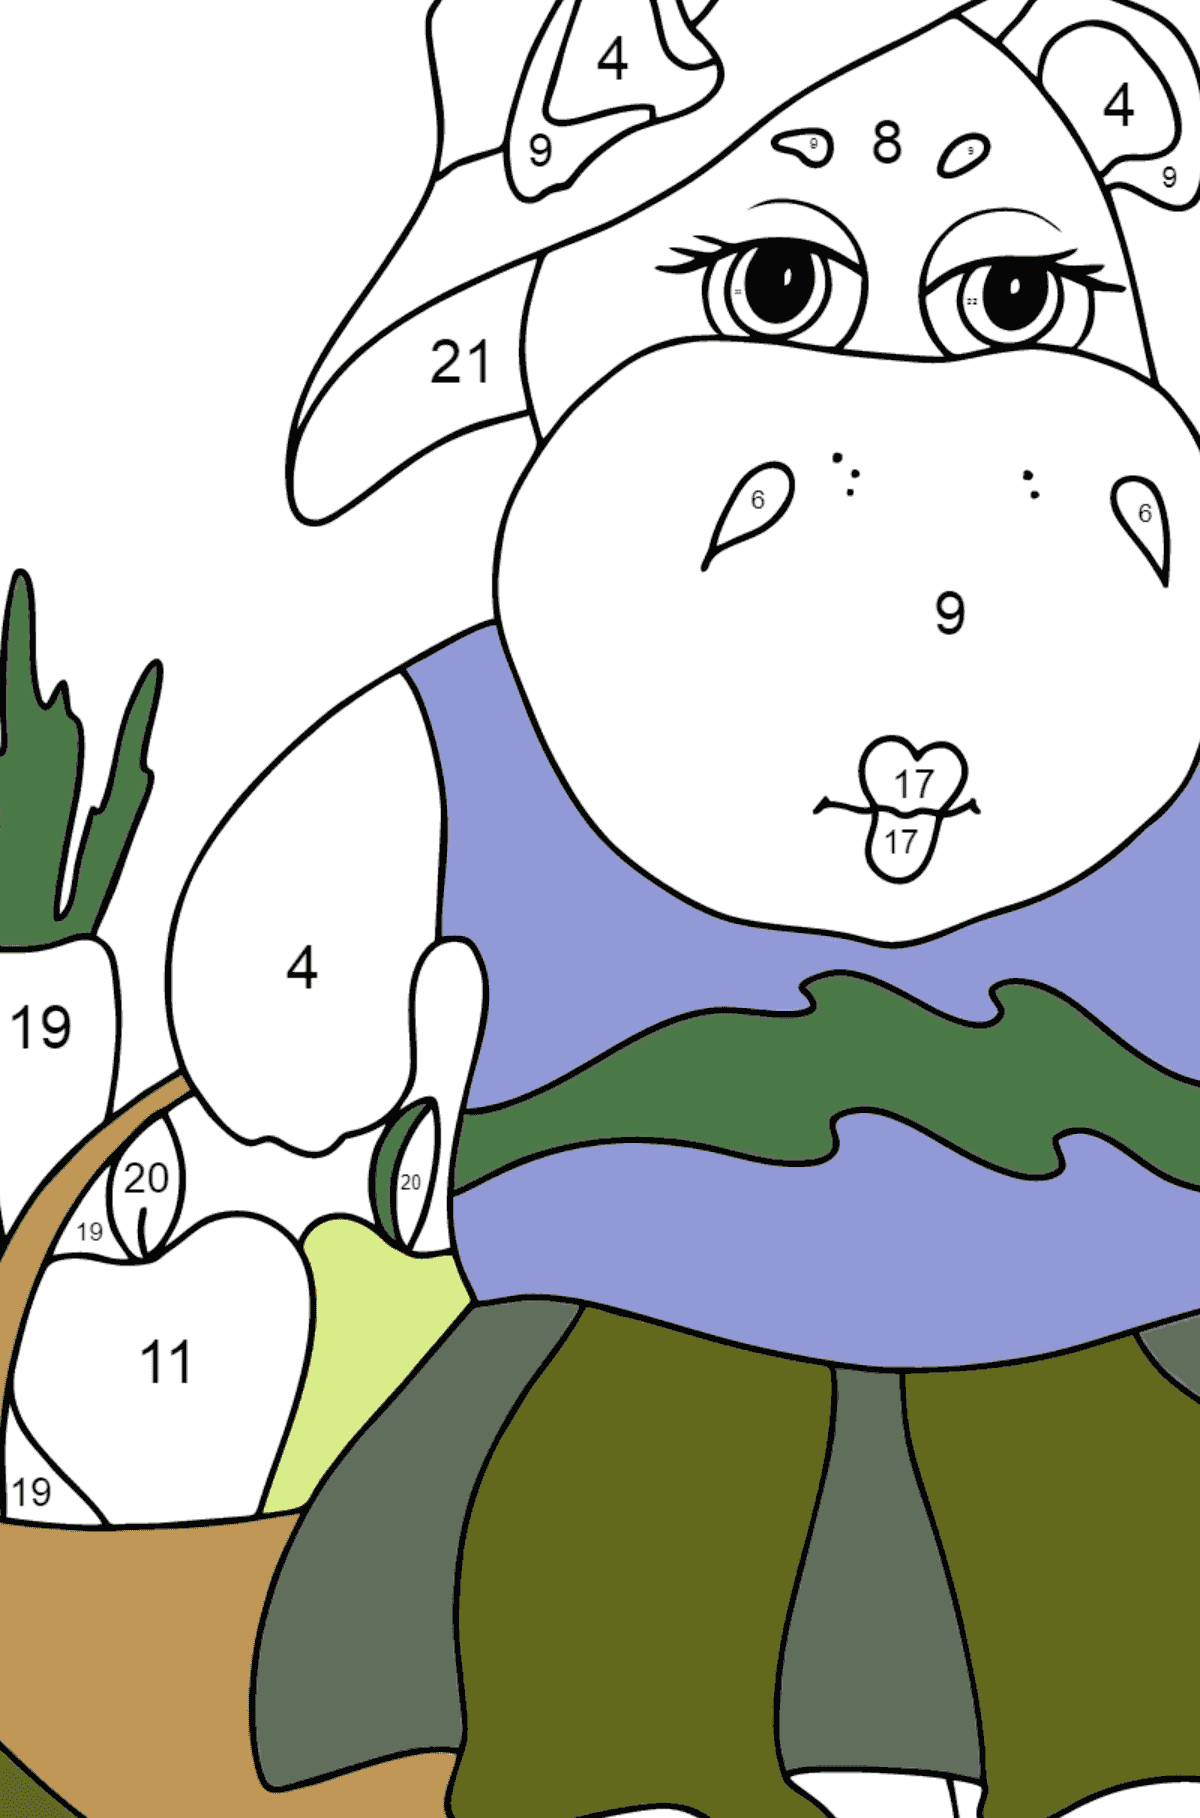 Coloring Page - A Hippo with a Crop Basket for Children  - Color by Number